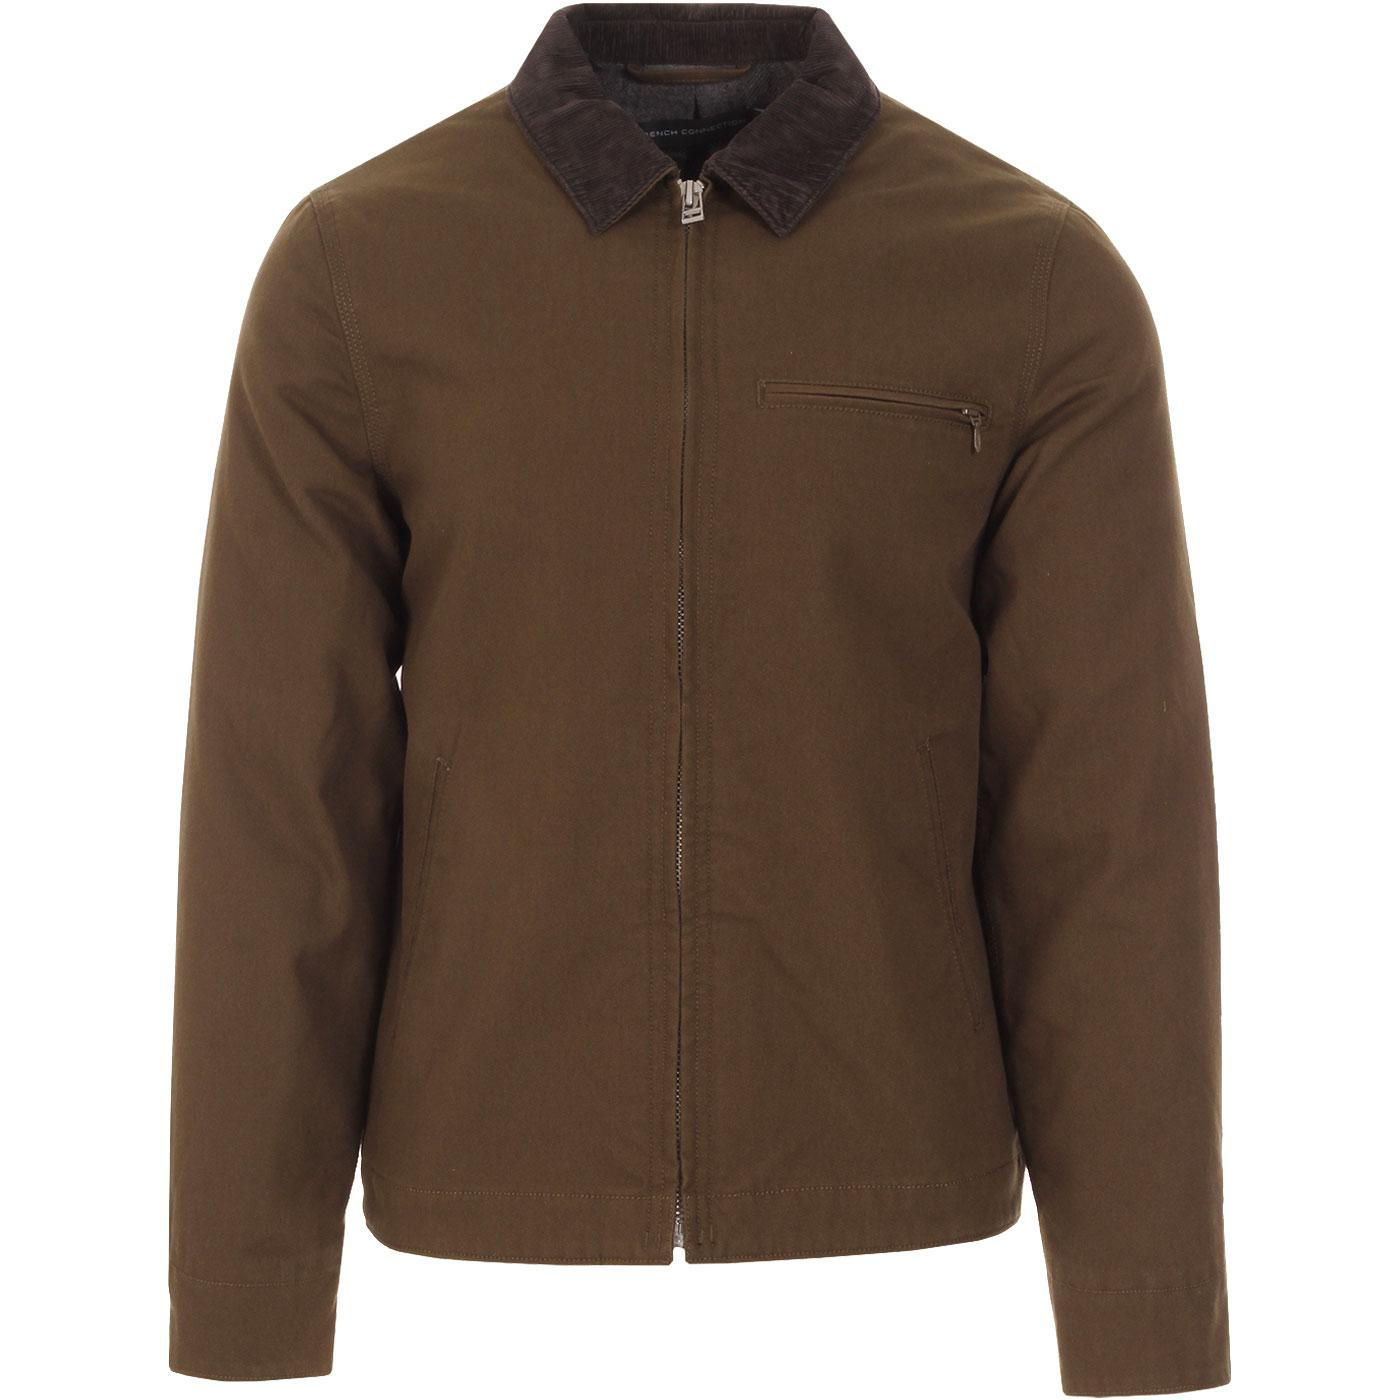 FRENCH CONNECTION Mod Utility Cotton Canvas Jacket